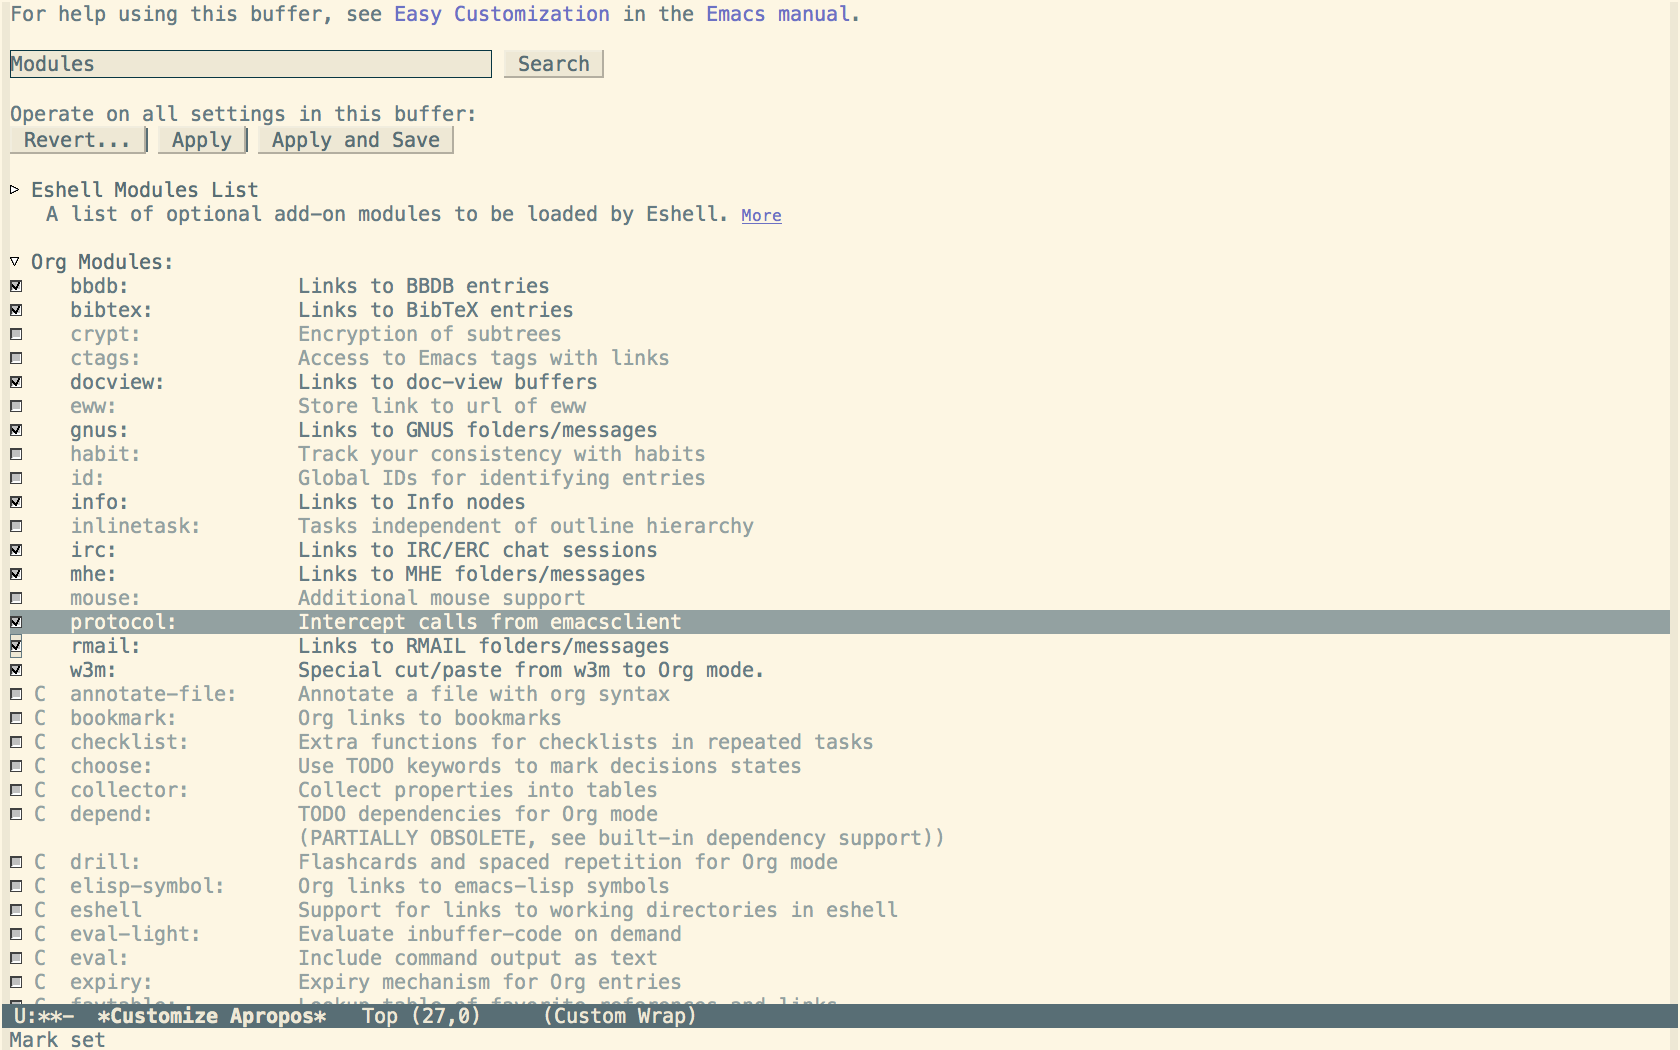 Screenshot of Emacs Customize